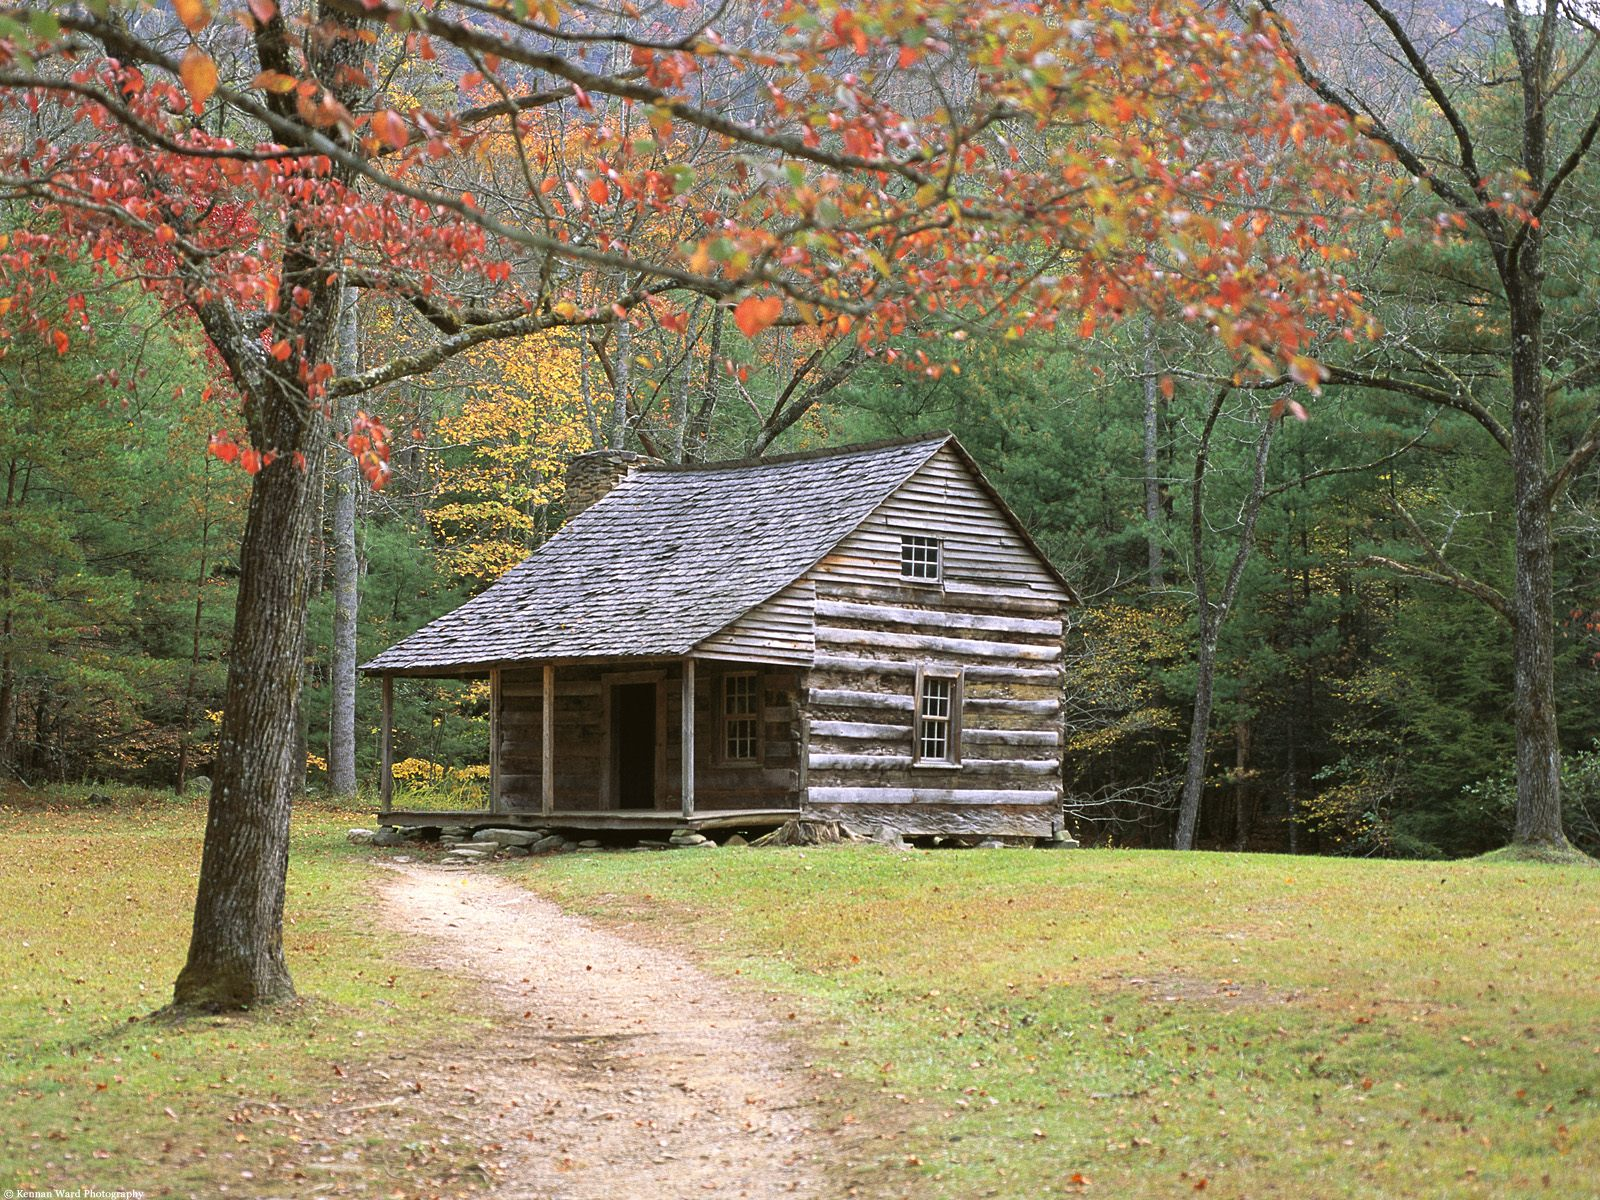 Log Cabins On Pinterest Log Cabins Log Cabin Interiors And A Log. Full resolution  portrait, nominally Width 1600 Height 1200 pixels, portrait with #995B32.